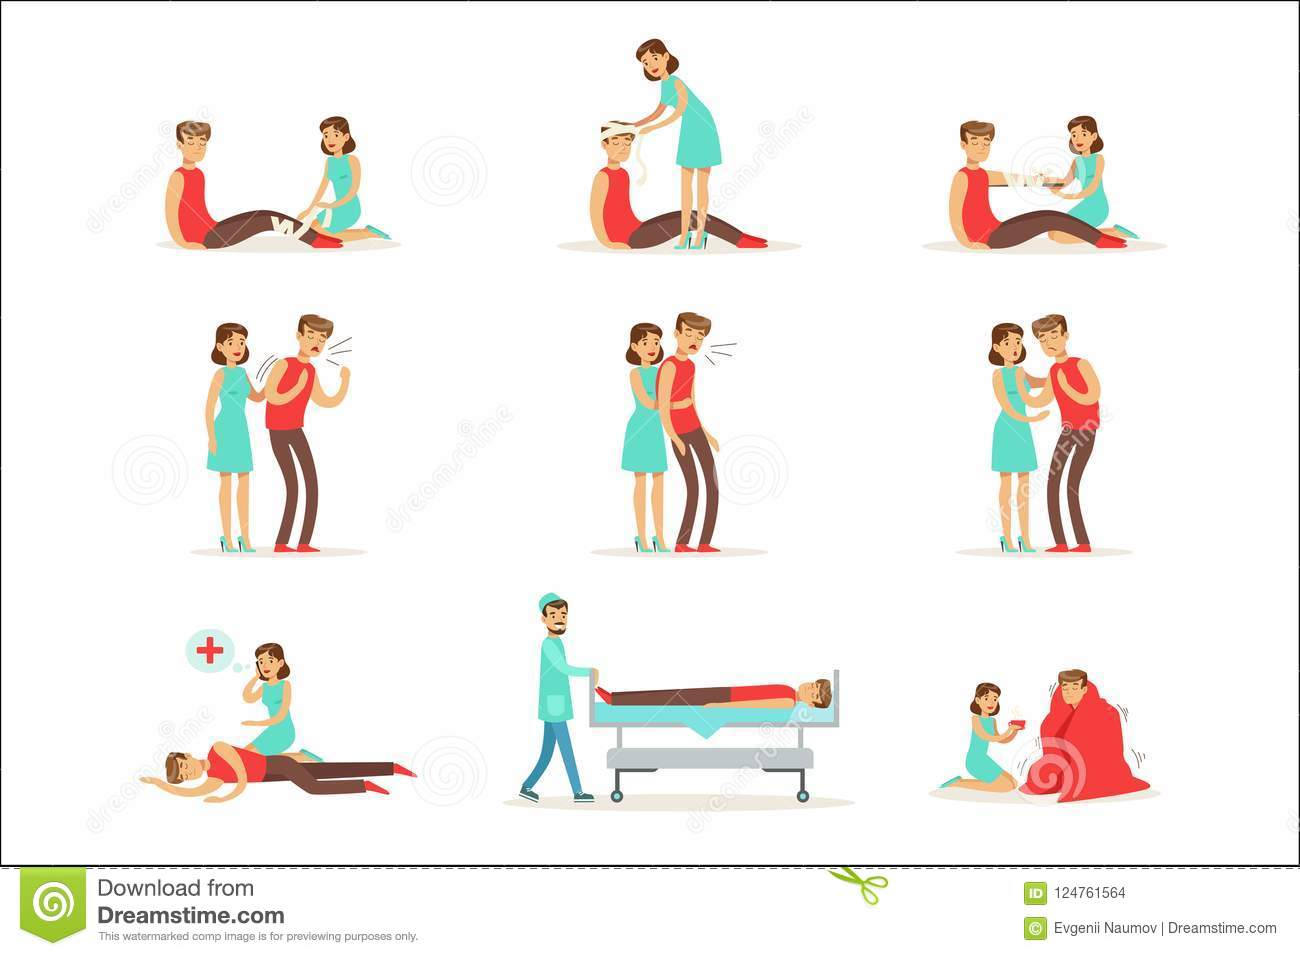 Woman Following Firs Aid Primary And Secondary Emergency Treatment Procedures Collection Of Infographic Illustrations